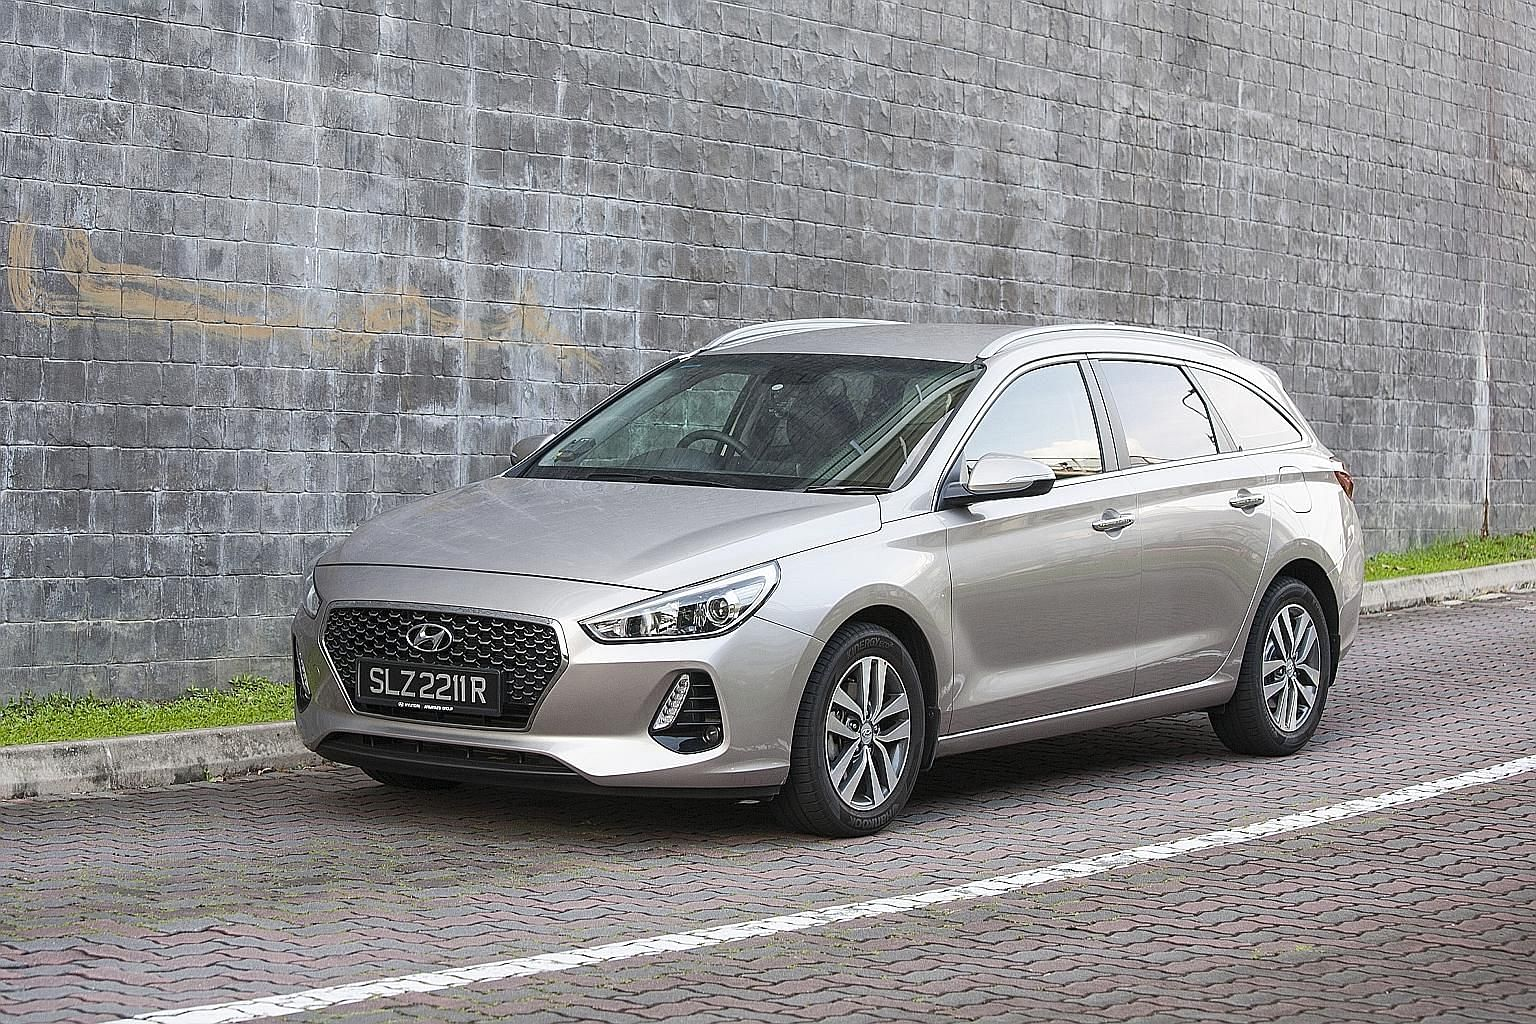 The Hyundai i30 Wagon dashboard features gadgets, such as a 9-inch infotainment screen, a wireless charging pad for smartphones, automatic dual-zone climate control, cruise control and keyless entry with push-button ignition. The Hyundai i30 Wagon ha